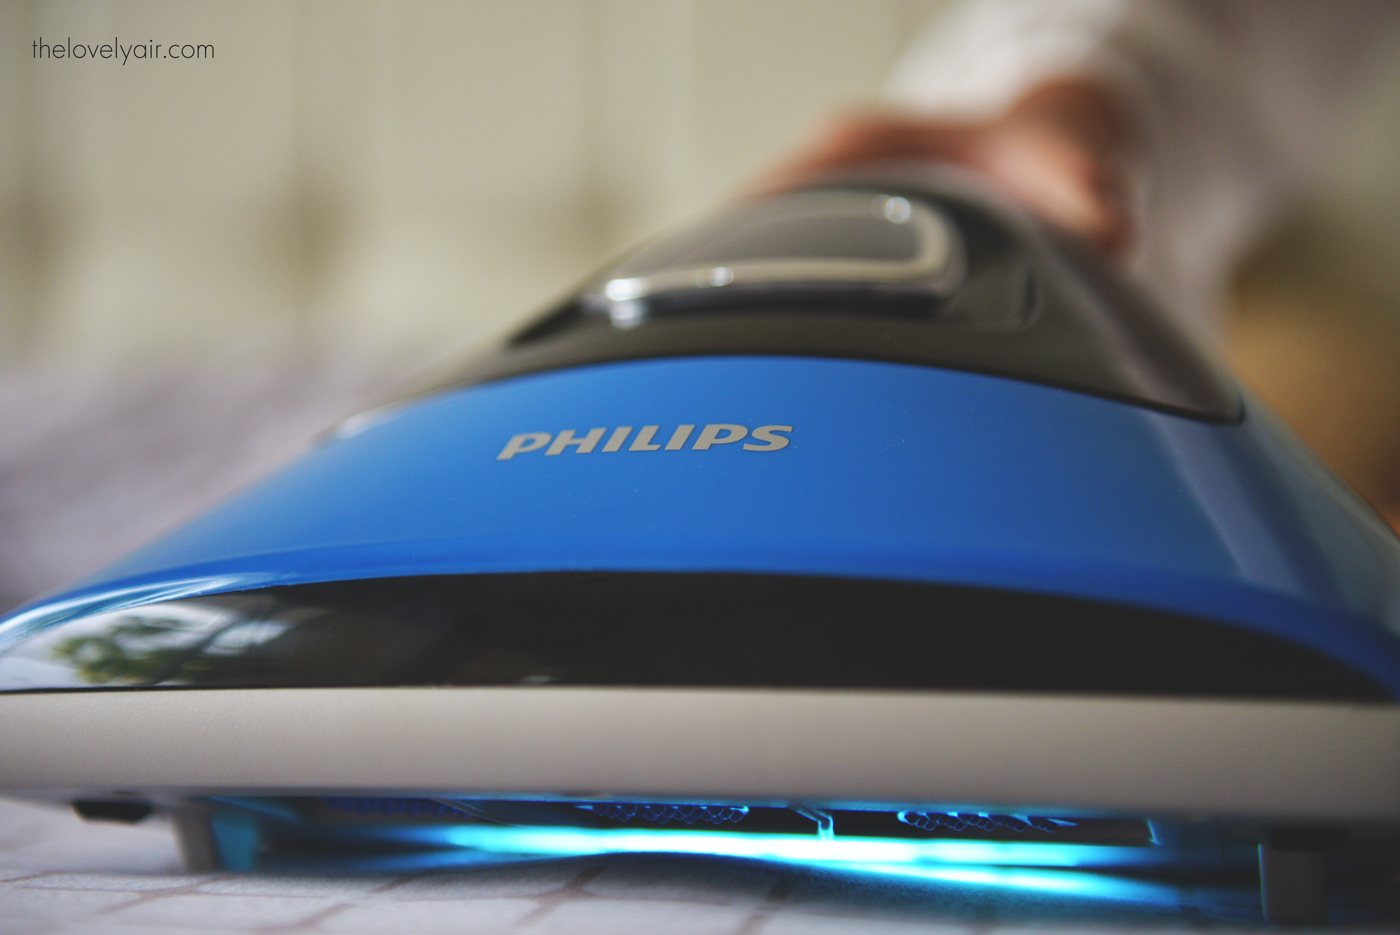 philips-mite-cleaner10